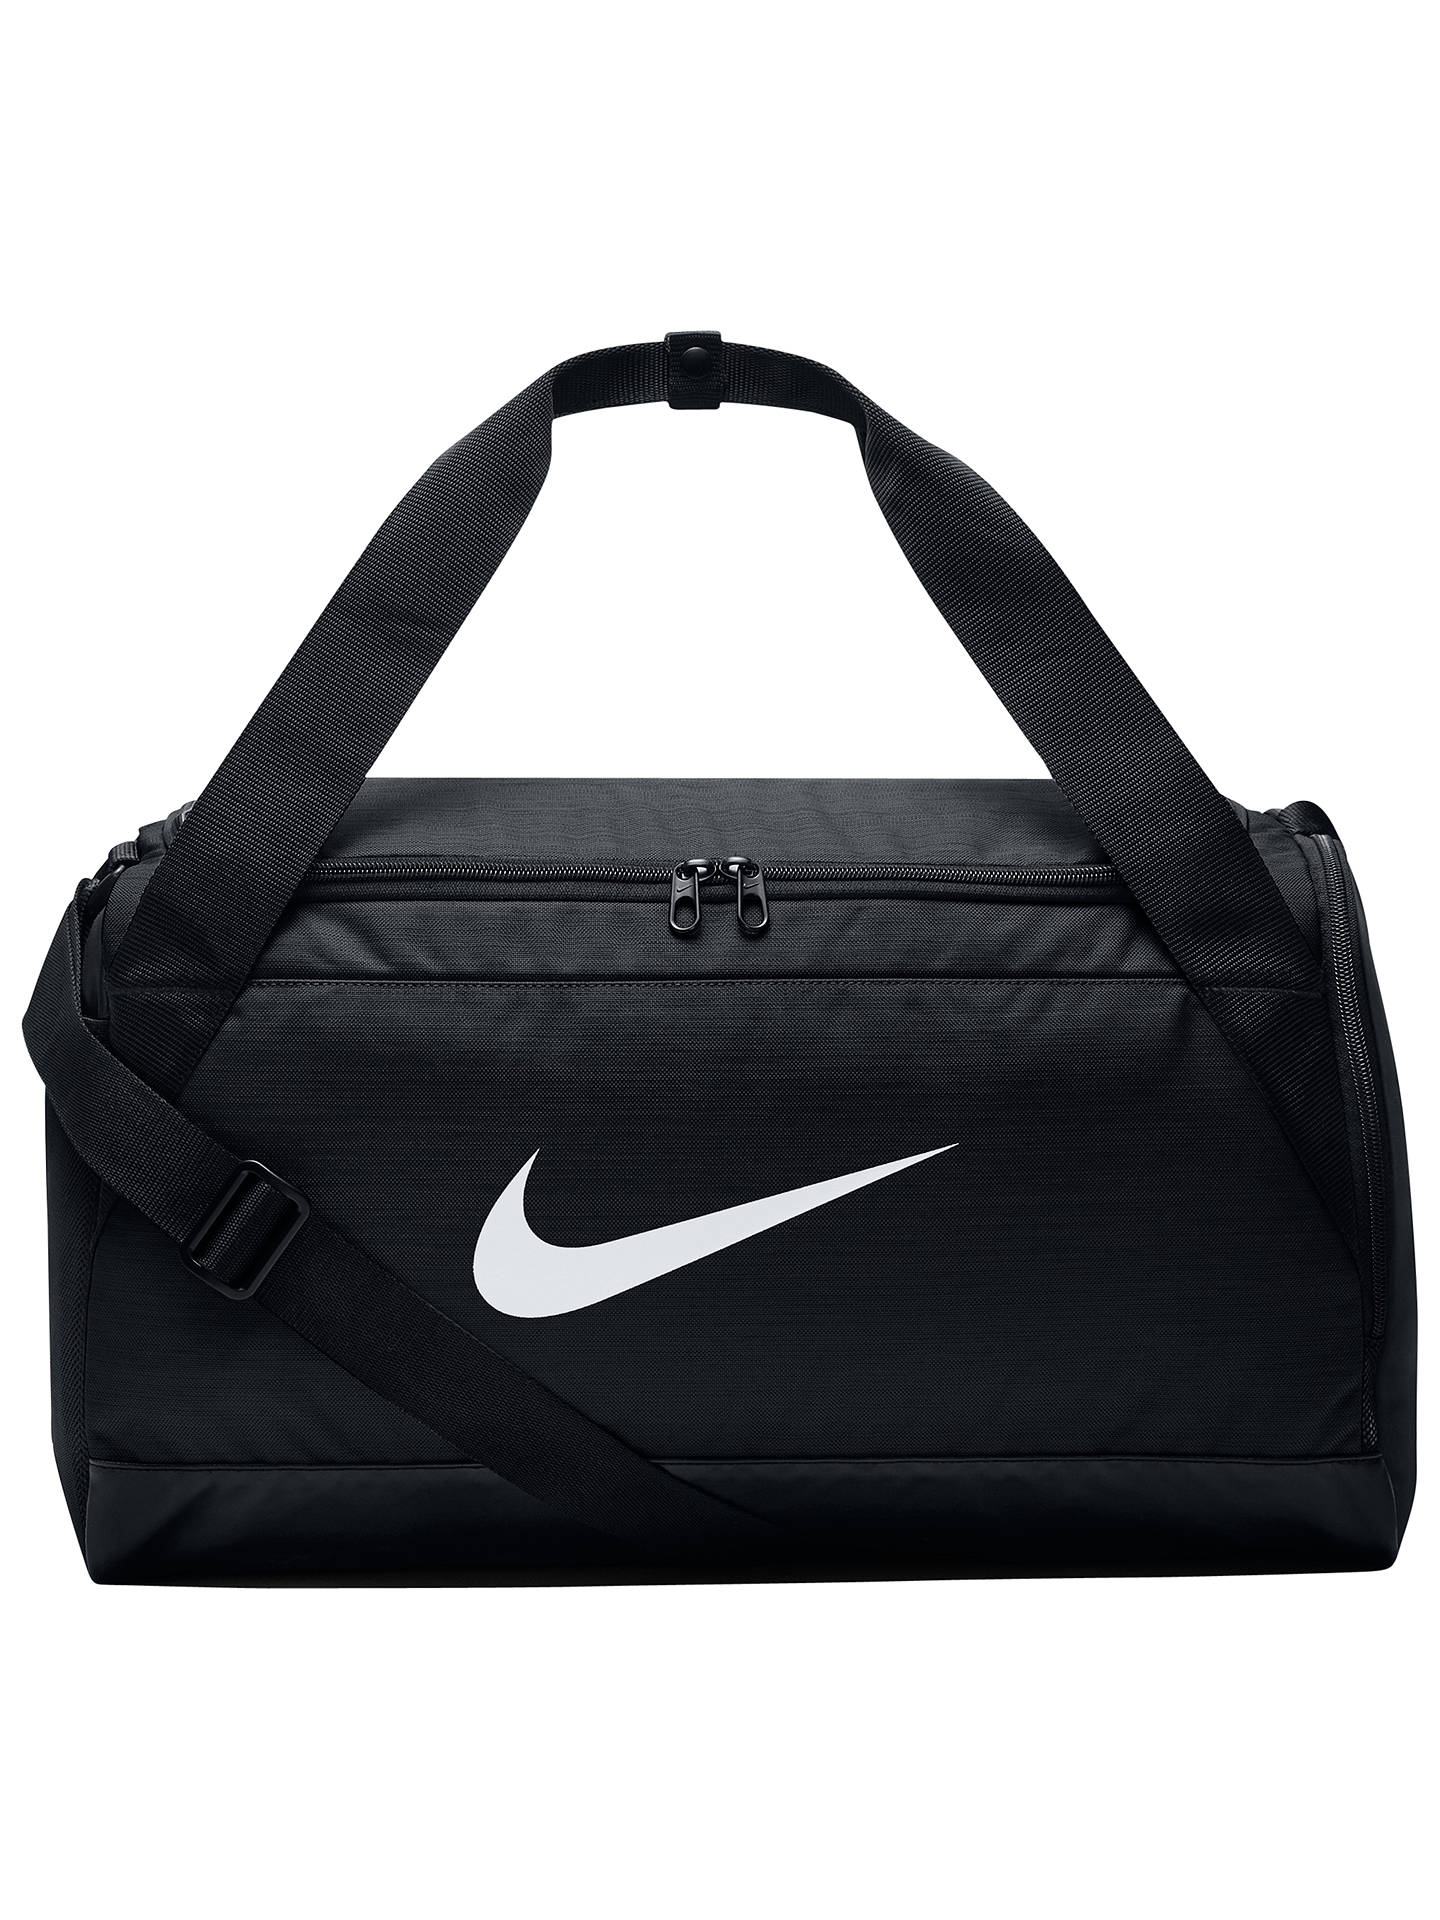 BuyNike Brasilia Training Duffle Bag, Small, Black Online at johnlewis.com